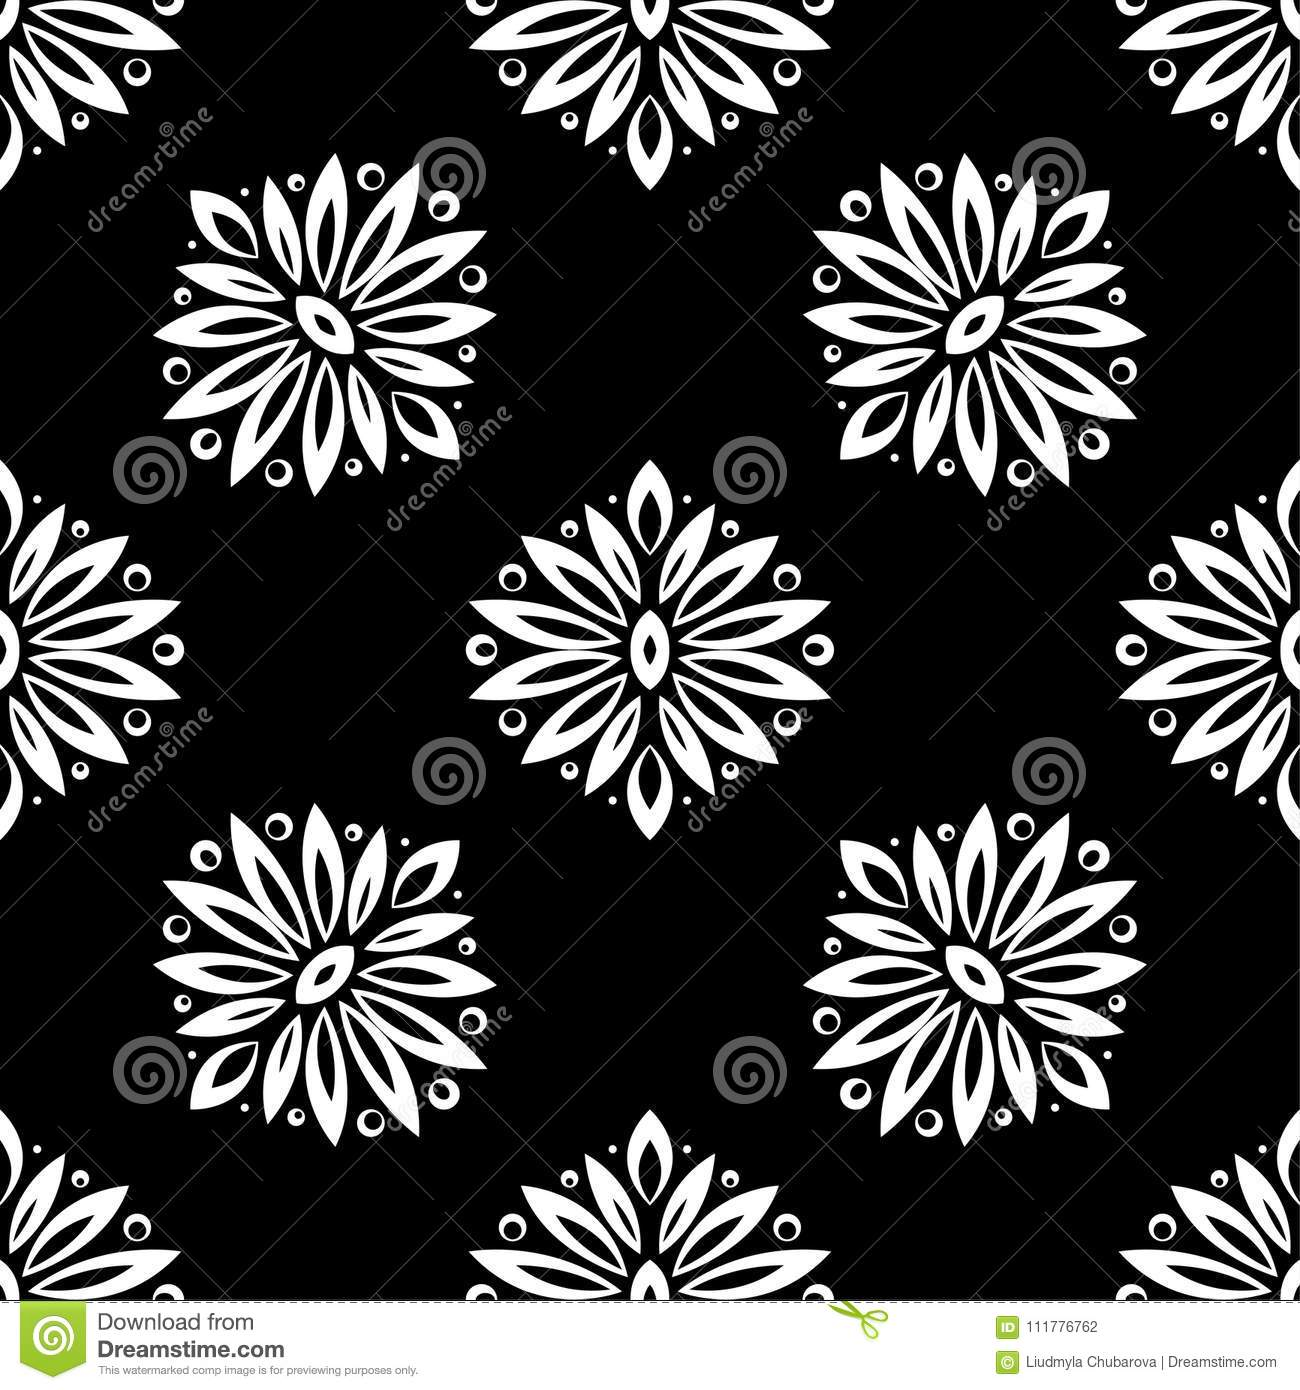 Floral background with black and white seamless pattern